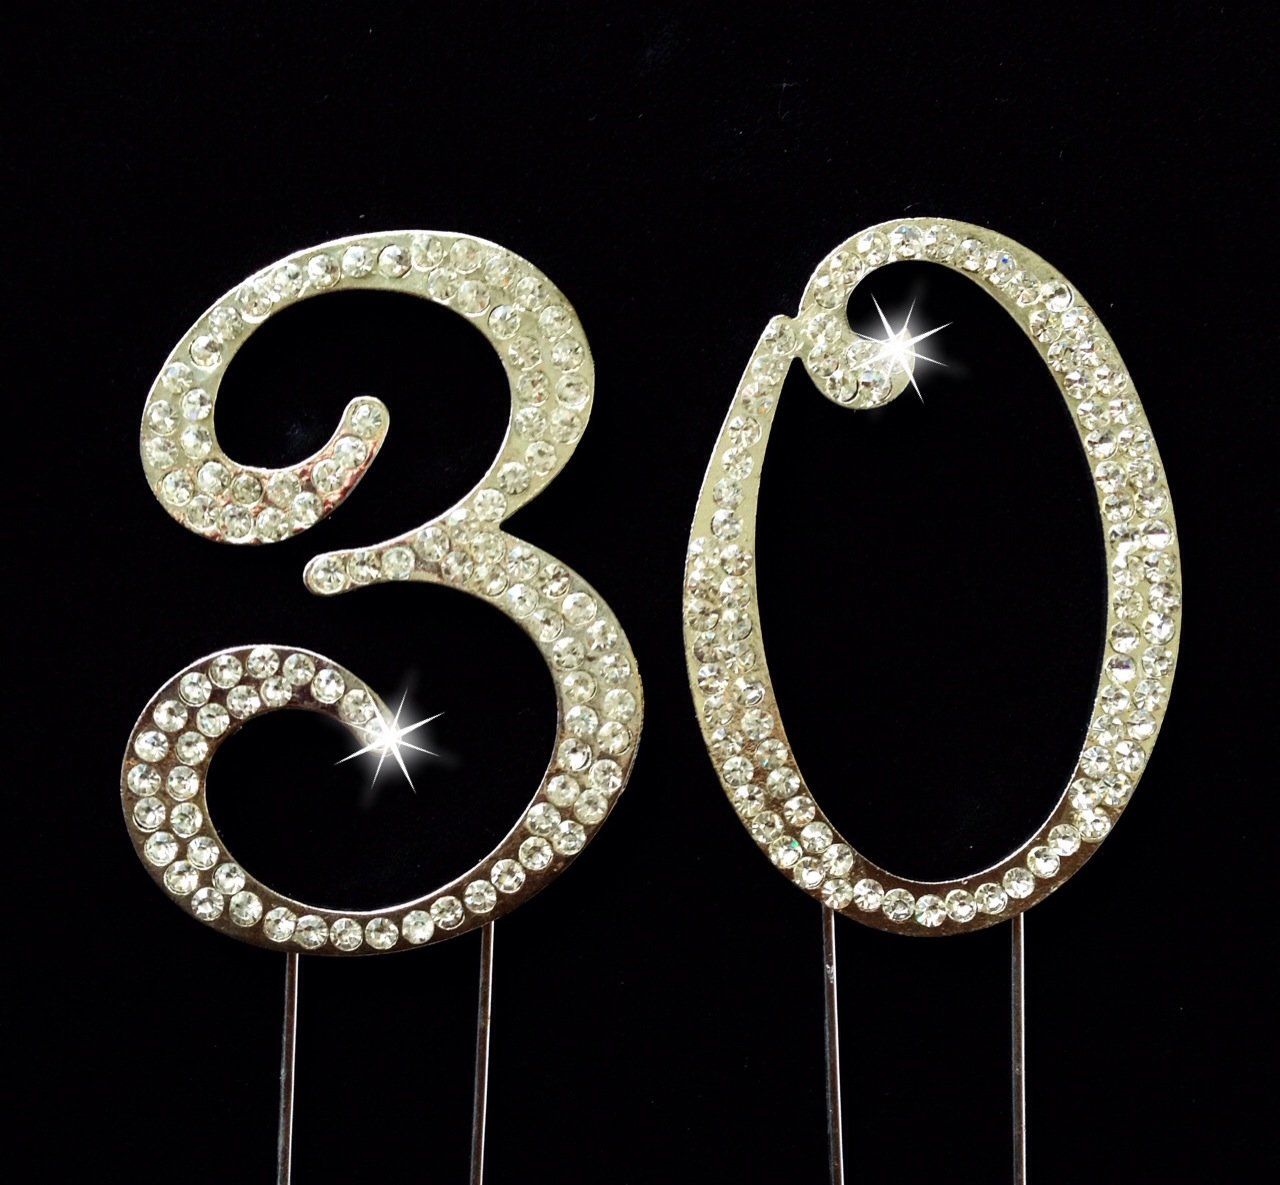 Com 30th Birthday Wedding Anniversary Number Cake Topper With Sparkling Rhinestone Crystals 2 75 Kitchen Dining